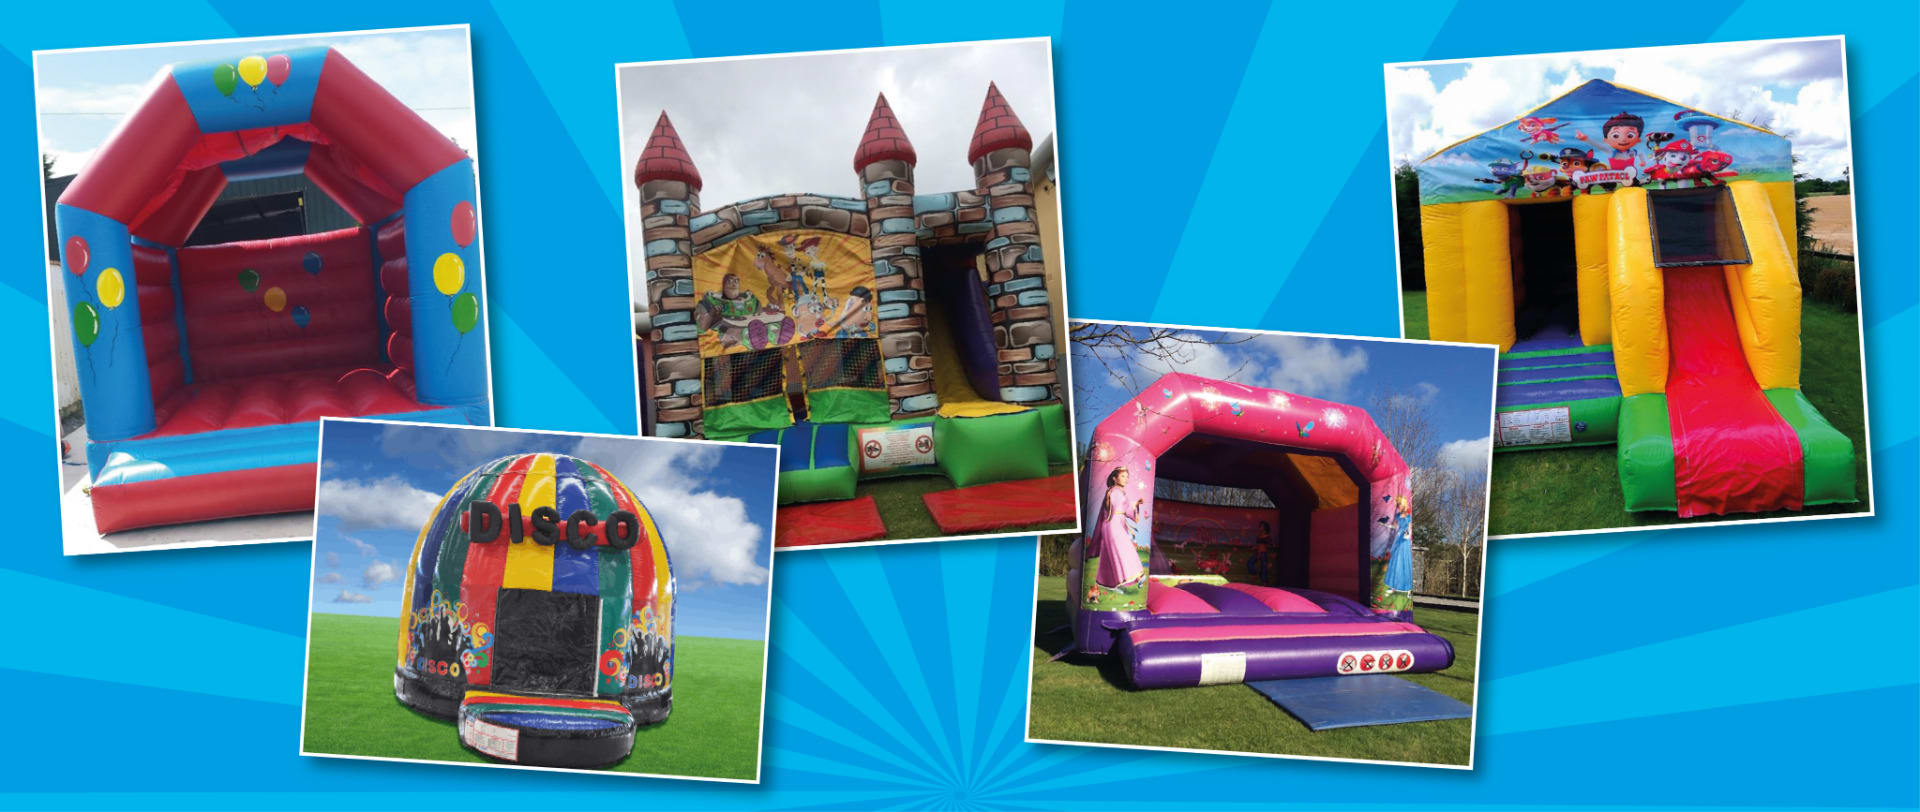 Cork Bouncy Castles